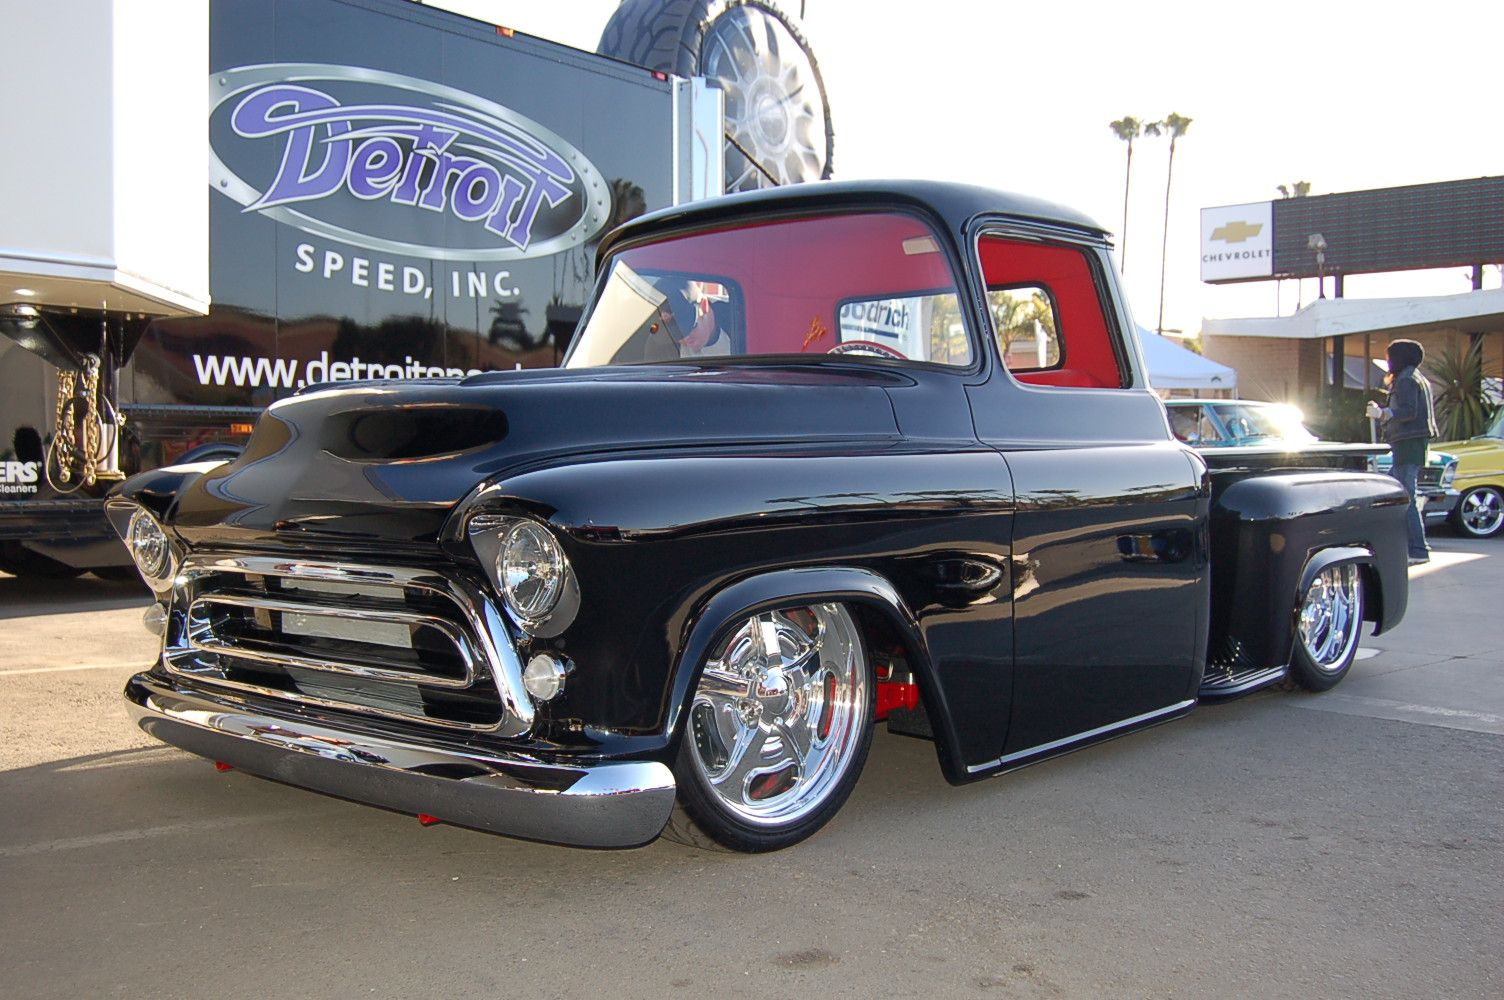 Pin by Erin Young on Black Car Photography   Pinterest   Chevy ...